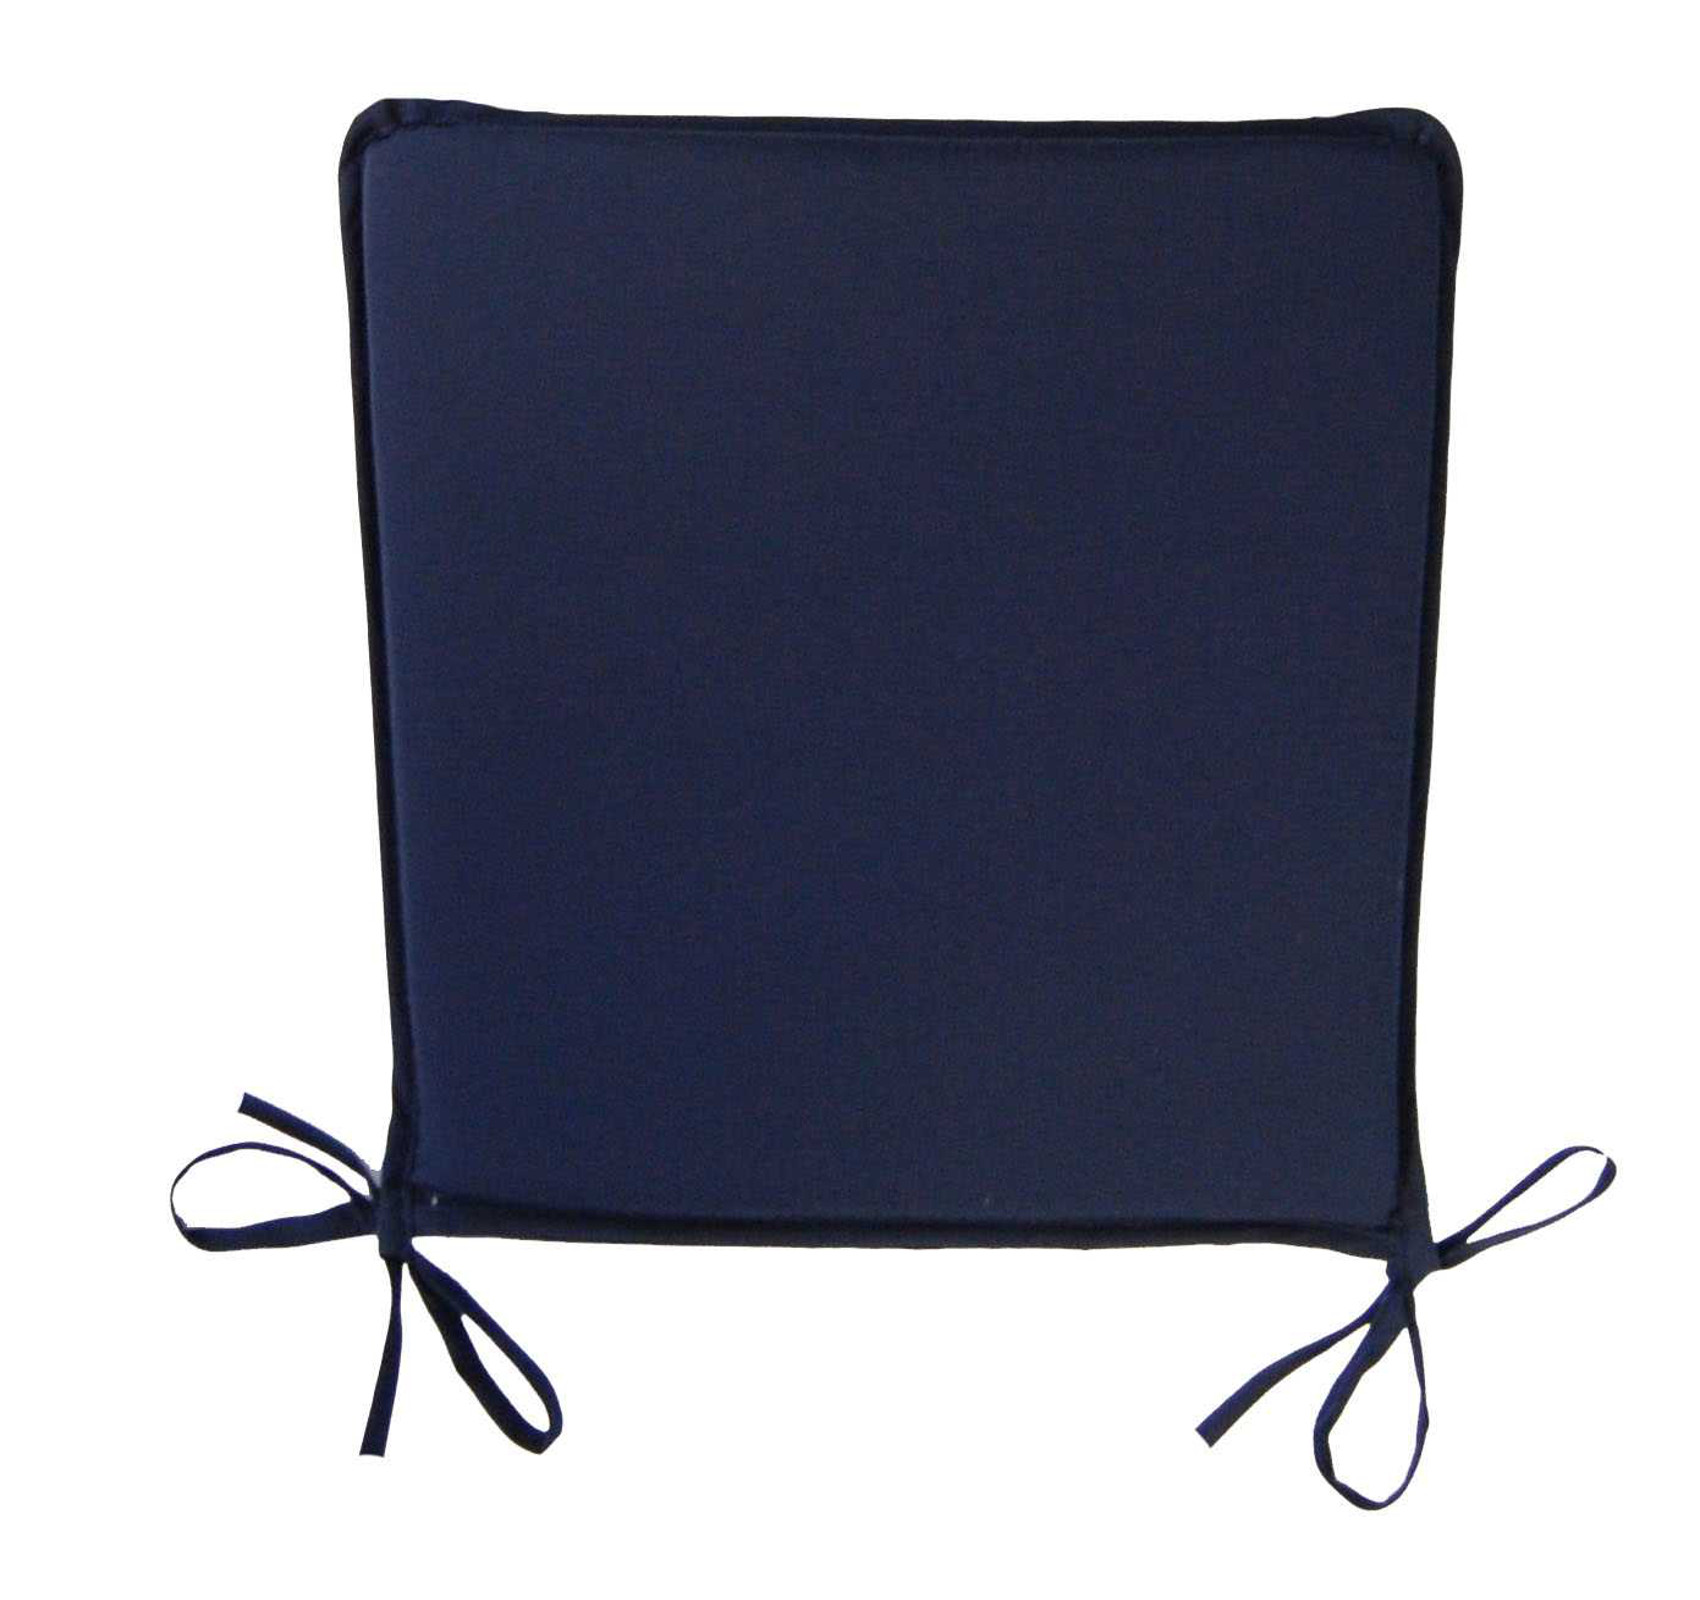 Plain Square Seat Pad Outdoor Garden Dining Kitchen Chair Furniture Cushion 15